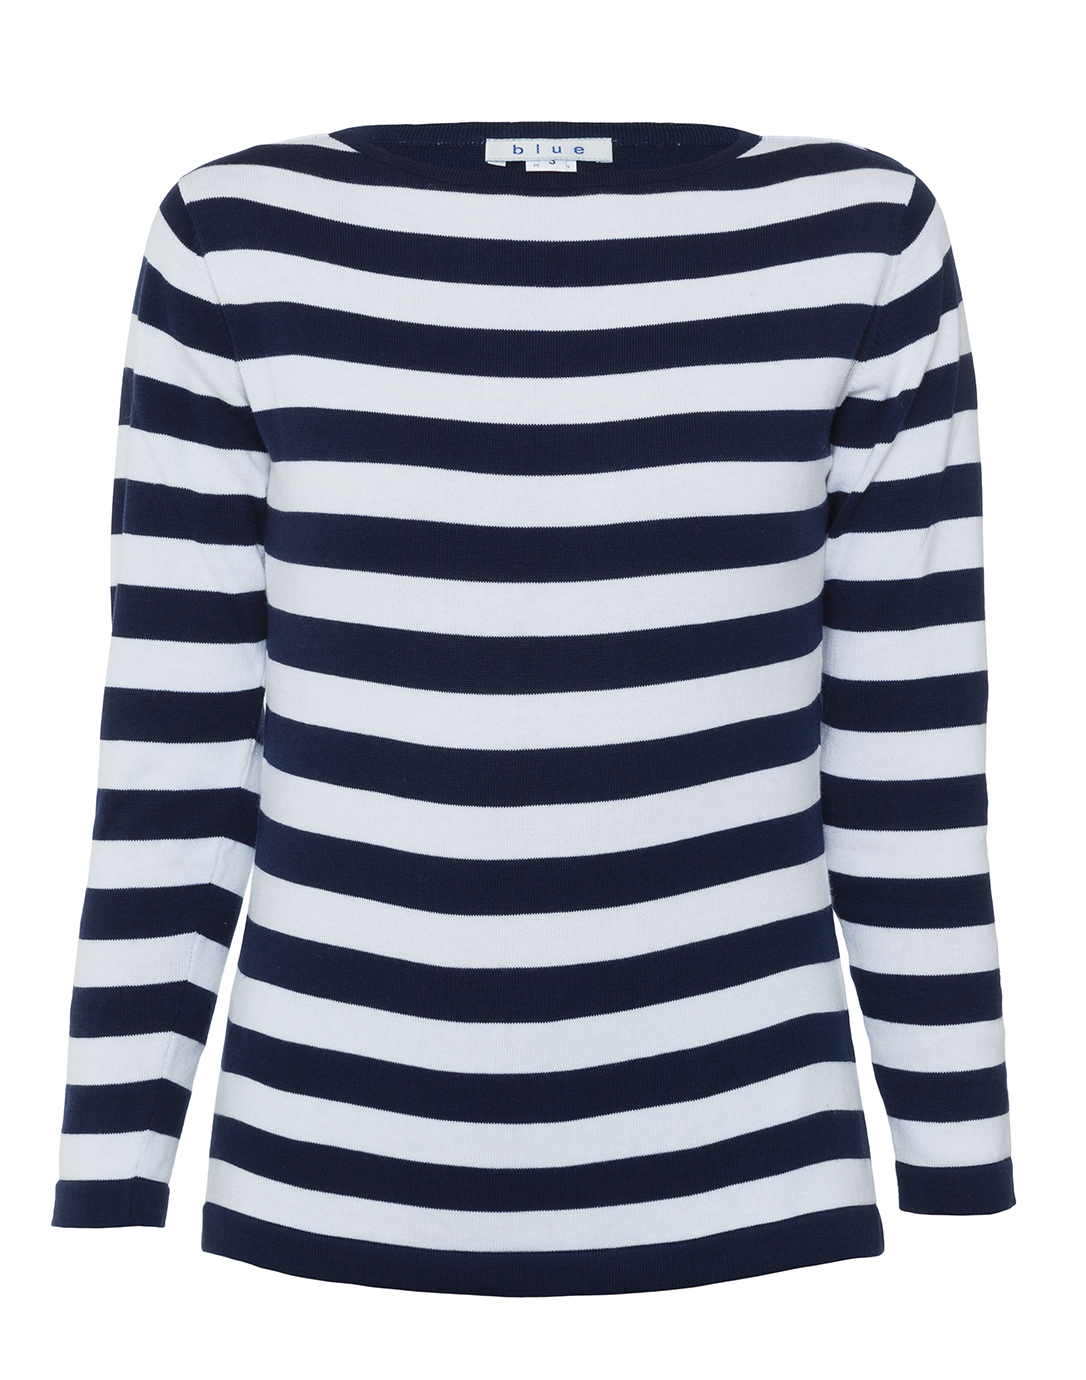 Throw on the Amuse Society Salt Air Washed Navy Blue Striped Sweatshirt and go for a crisp morning walk on the beach! Soft, lightweight knit in a classic washed navy blue and white striped pattern, shapes this cozy pullover sweatshirt with a crew neckline, long sleeves, and a wide-cut, relaxed fit.